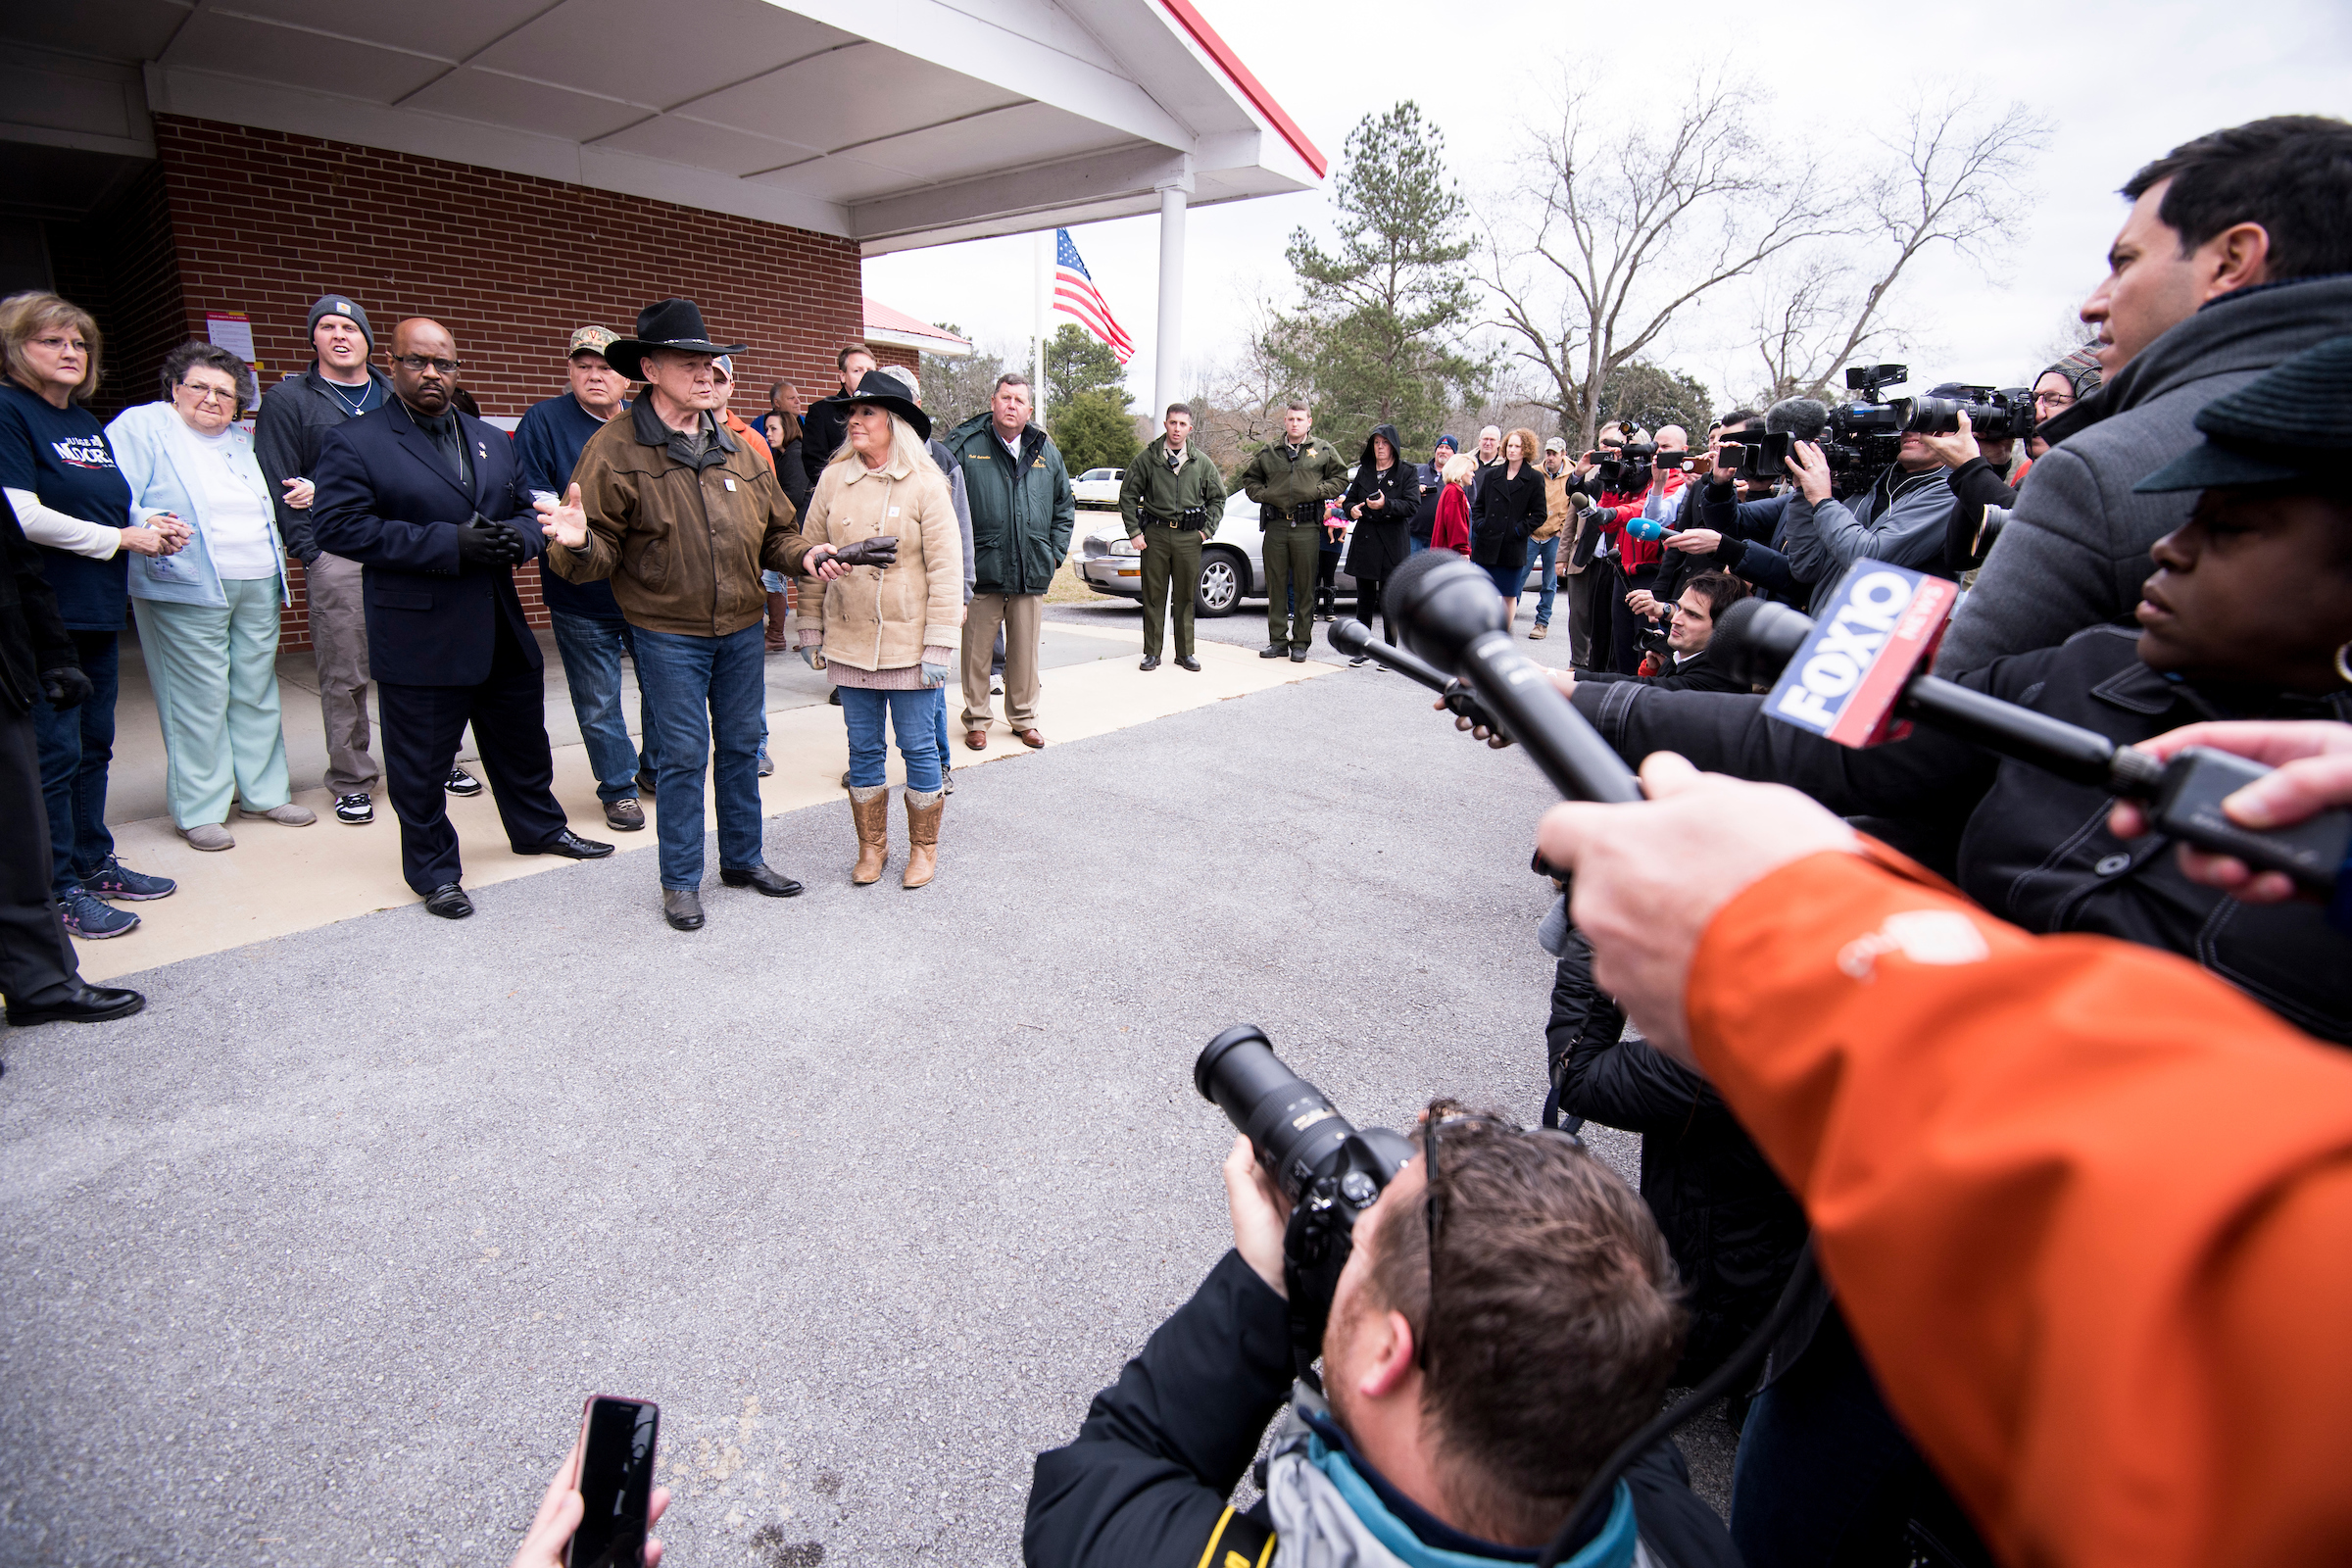 UNITED STATES - DECEMBER 11: Judge Roy Moore speaks to the media with his wife Kayla at his side after voting at the Gallant Volunteer Fire Department in Gallant, Ala., on Tuesday, Dec. 12, 2017. (Photo By Bill Clark/CQ Roll Call)